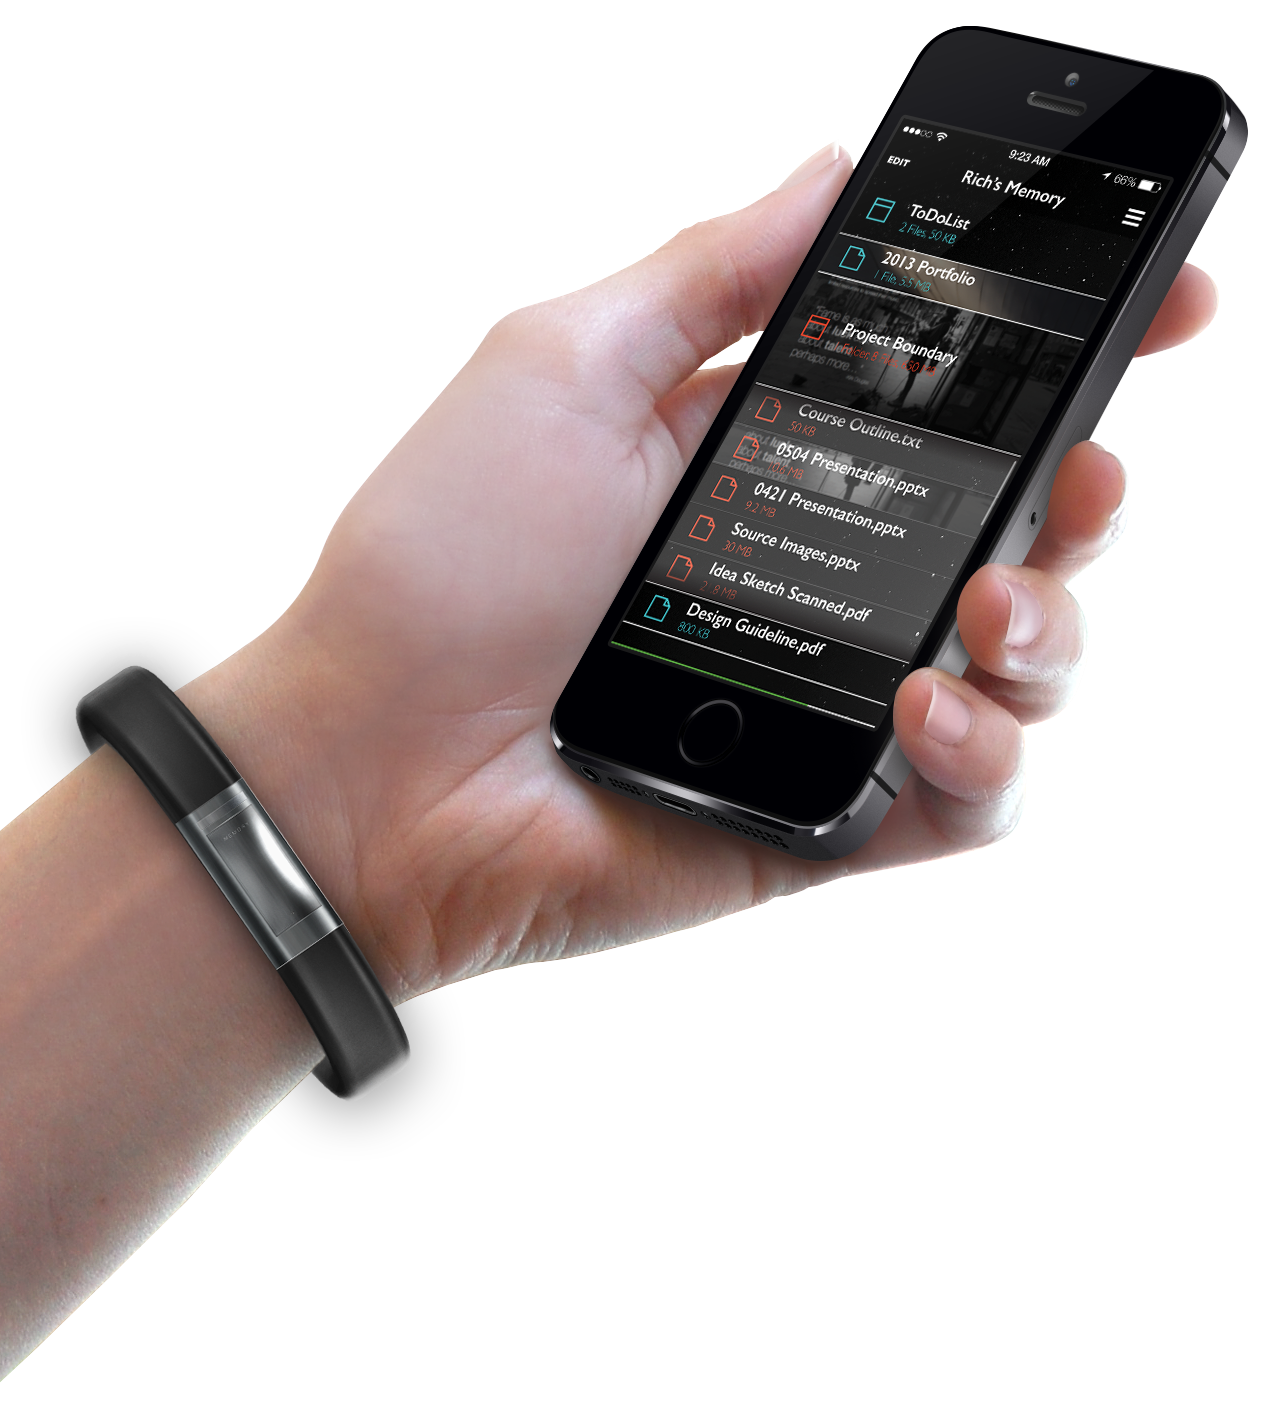 WRIST MOUNT & MEMORY SMARTPHONE APPLICATION